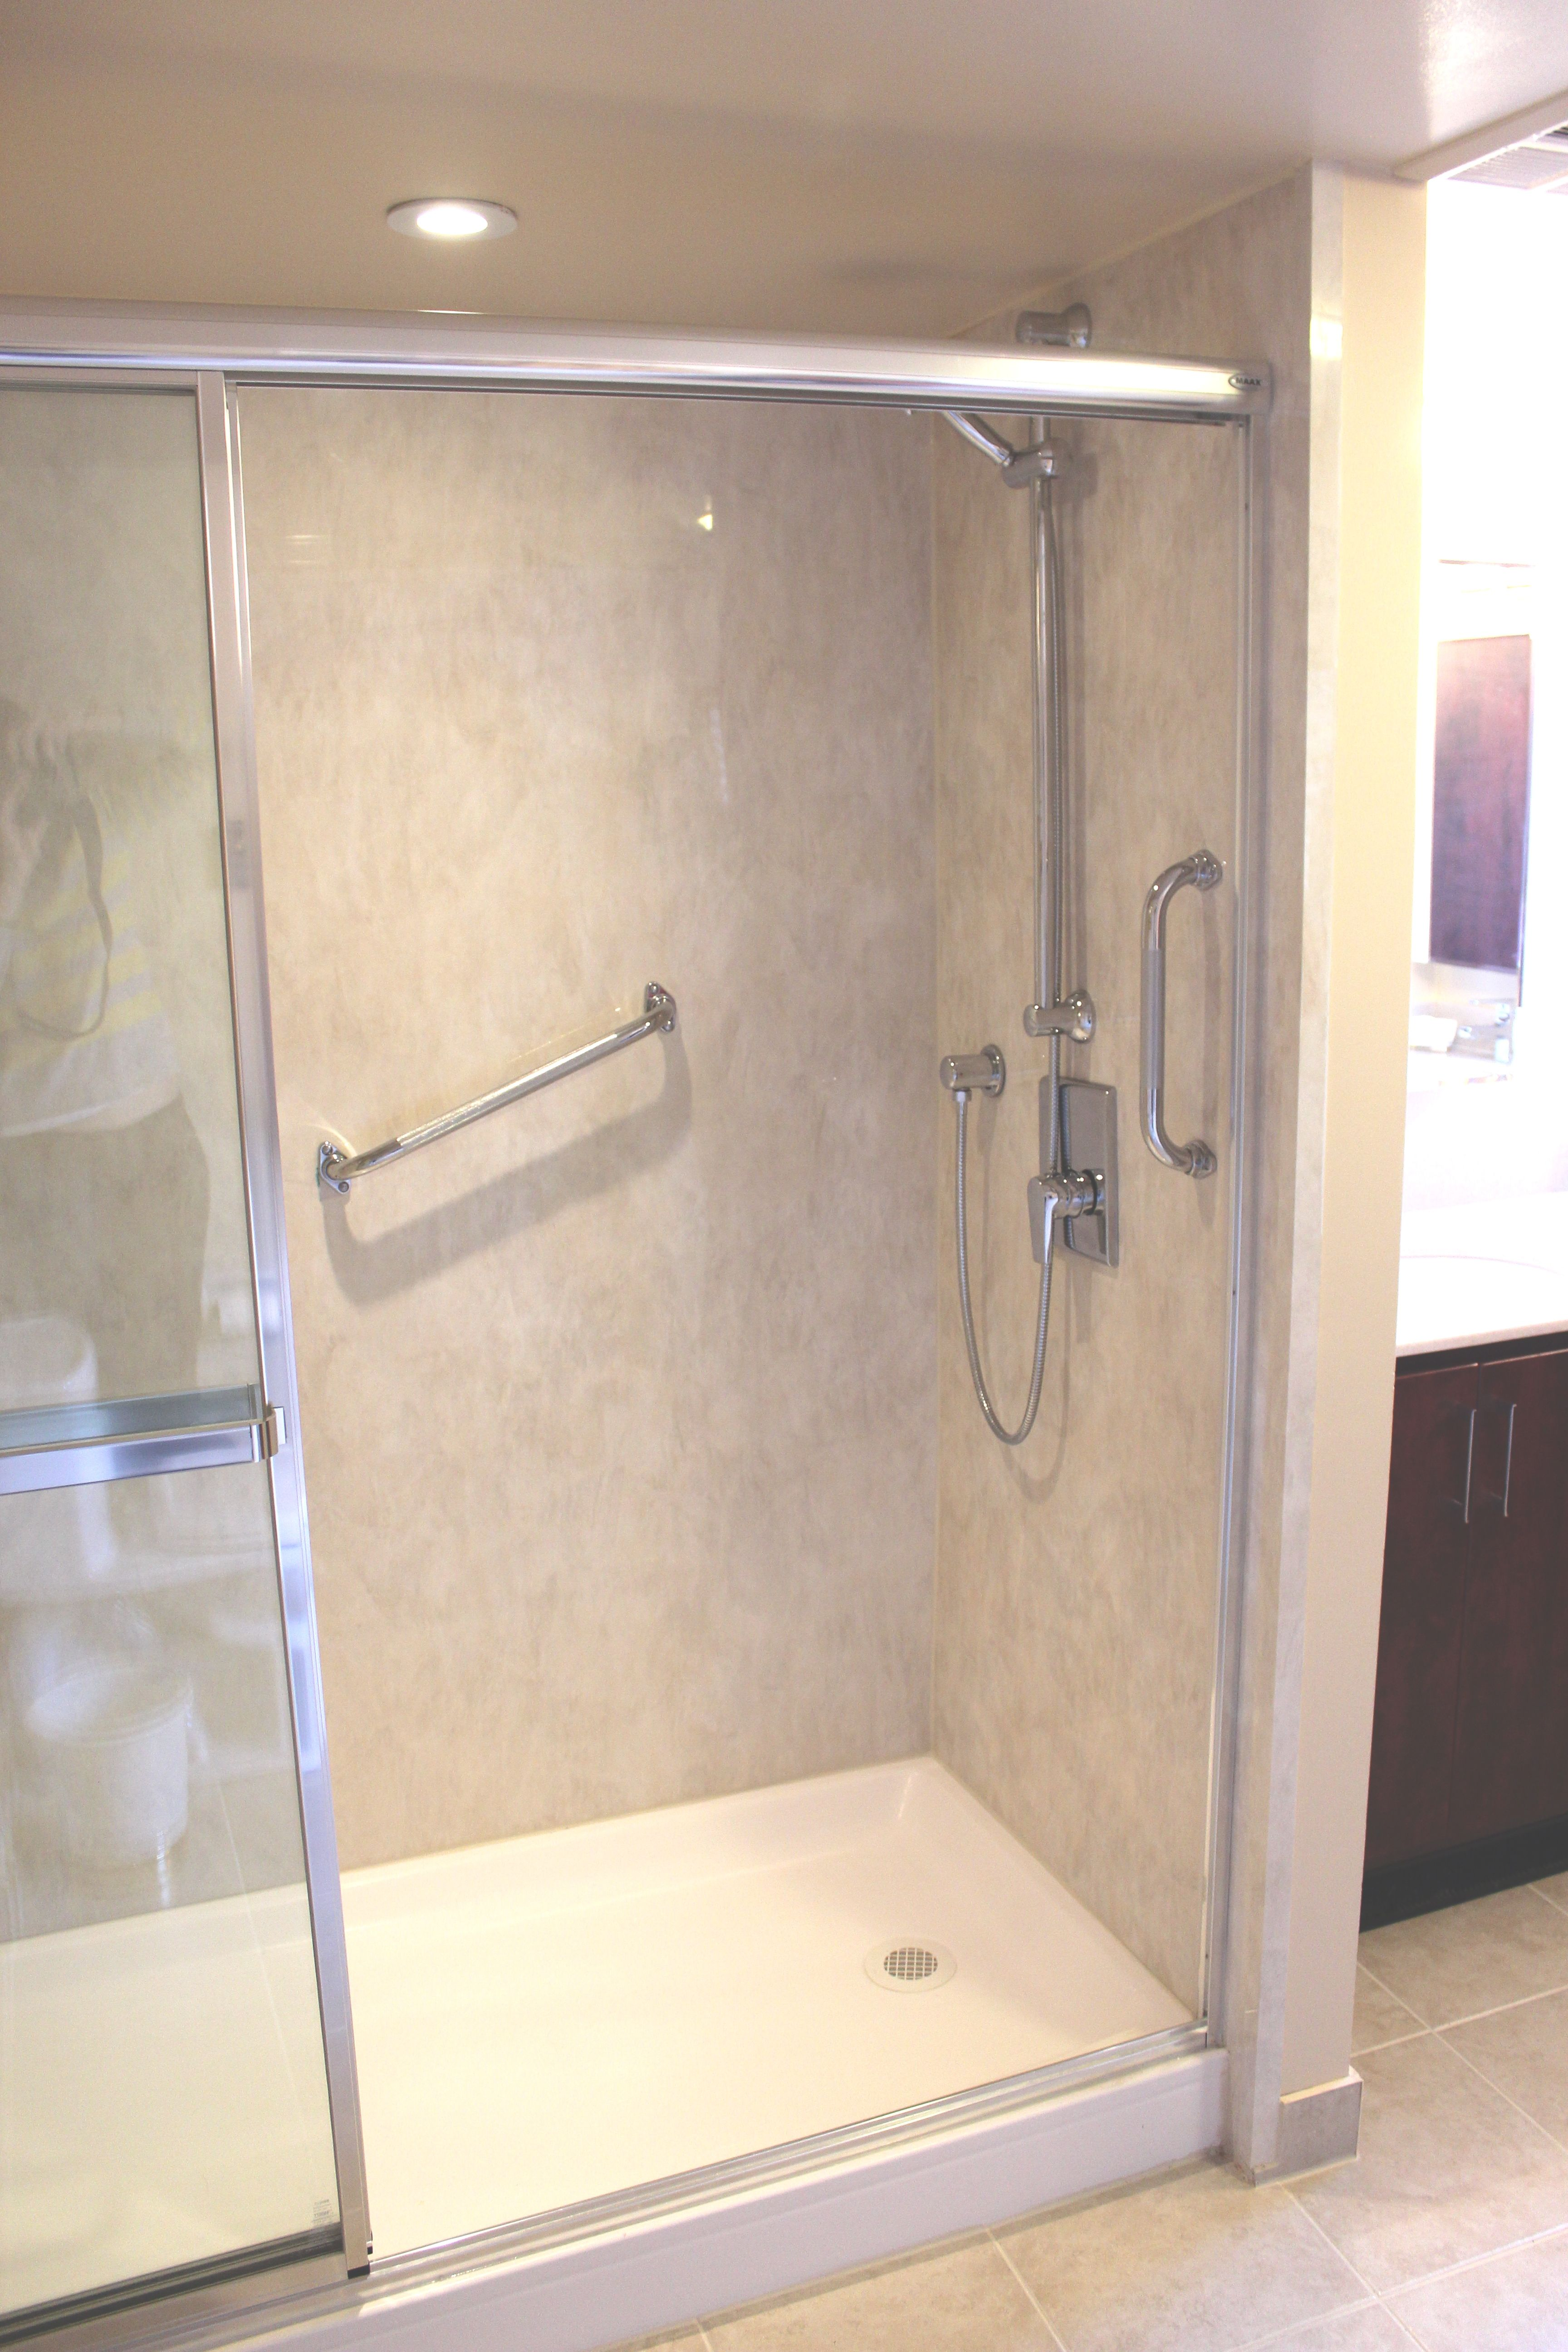 Tub To Shower Conversions By Lampert Renovations In Toronto Tub To Shower Conversion Shower Conversion Bathroom Inspiration